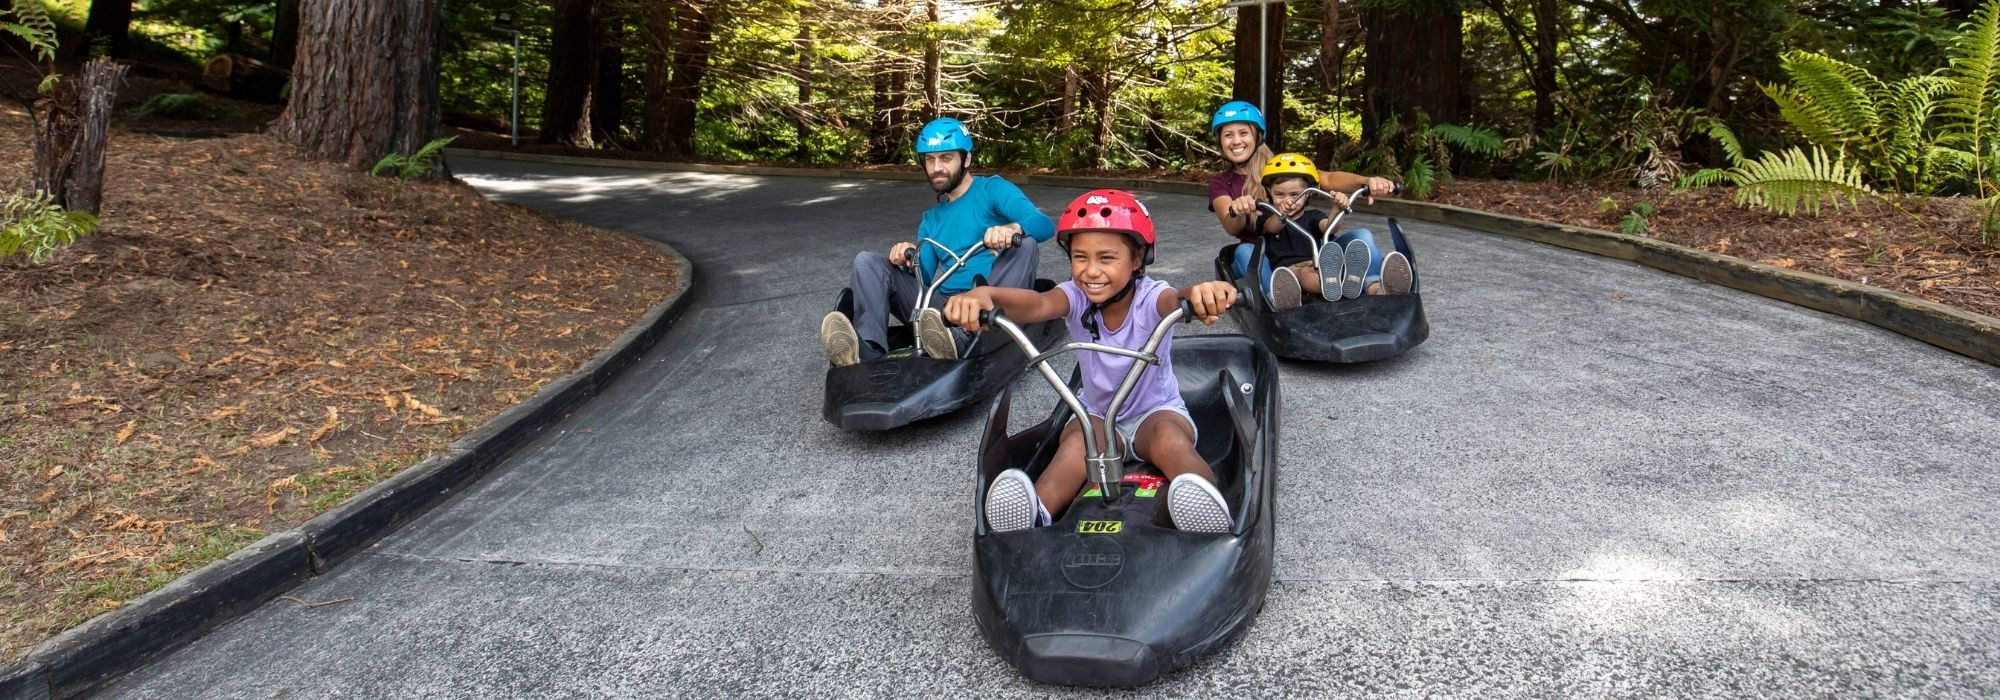 Two-day itinerary ideas for family fun